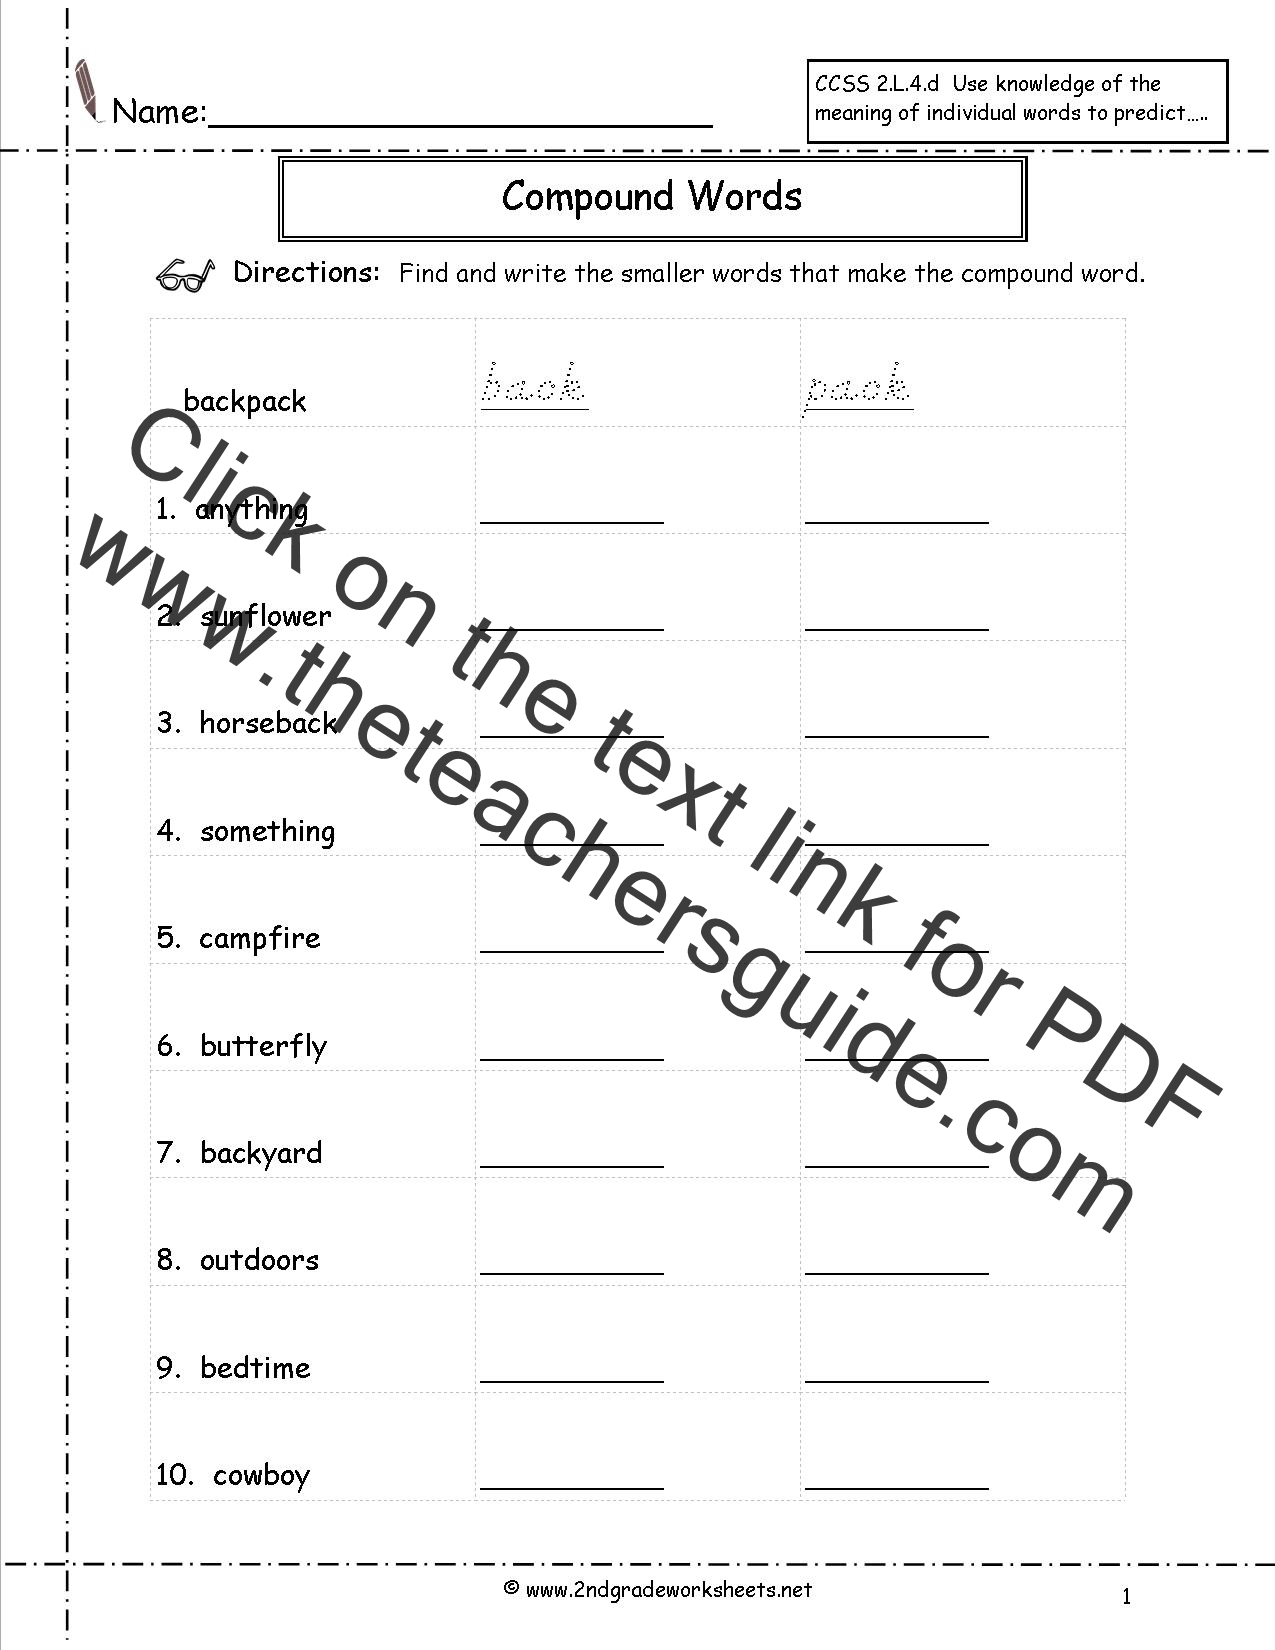 Worksheets 2nd Grade Grammar Worksheets free languagegrammar worksheets and printouts compound words worksheets